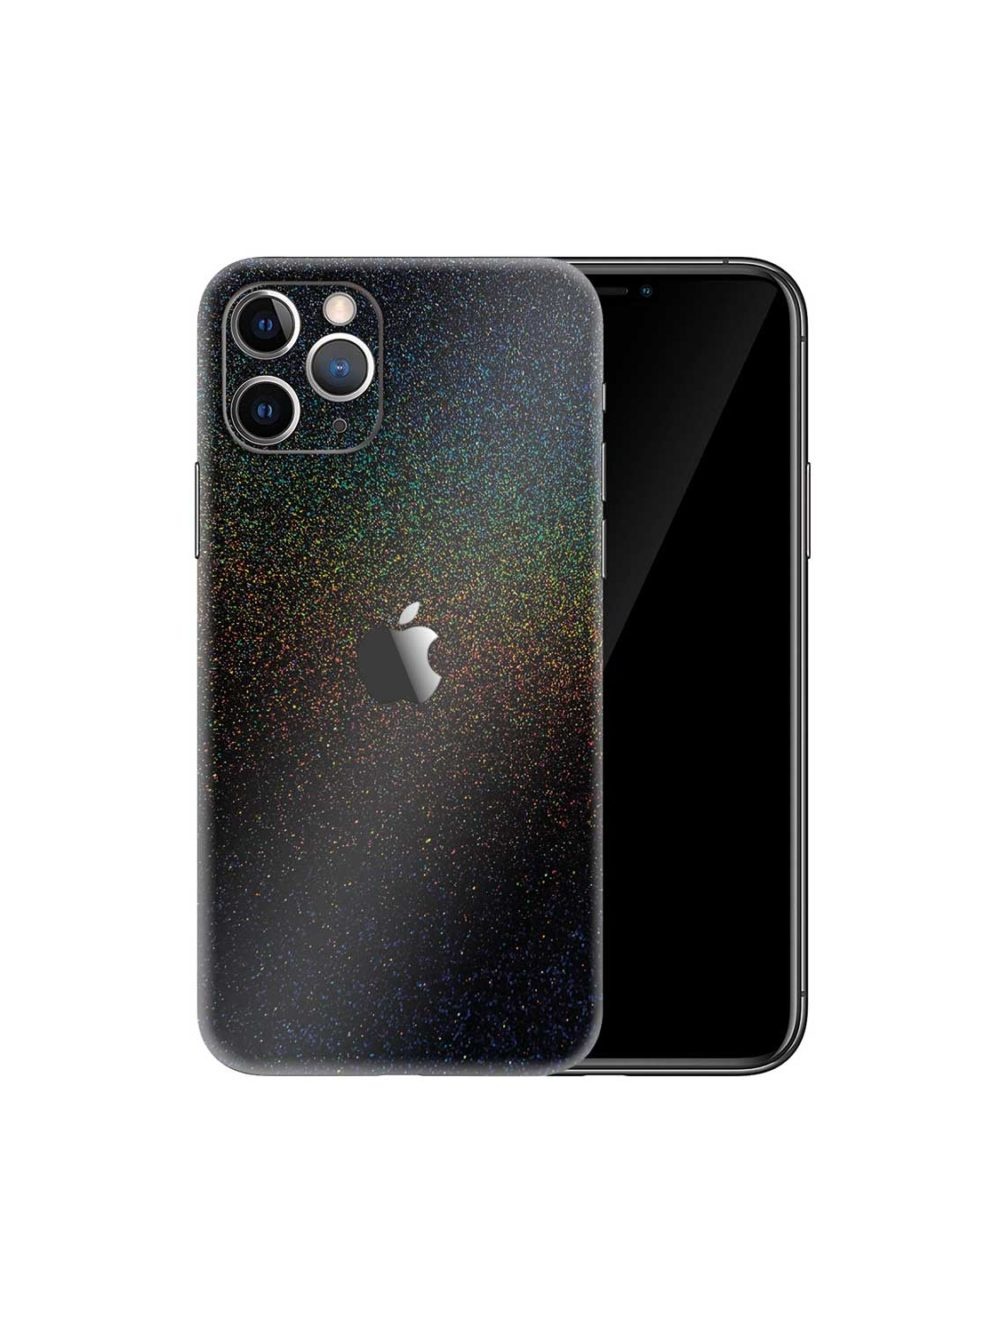 Apple iPhone 11 Pro Gloss Cosmic Morpheus Black Skin Wrap